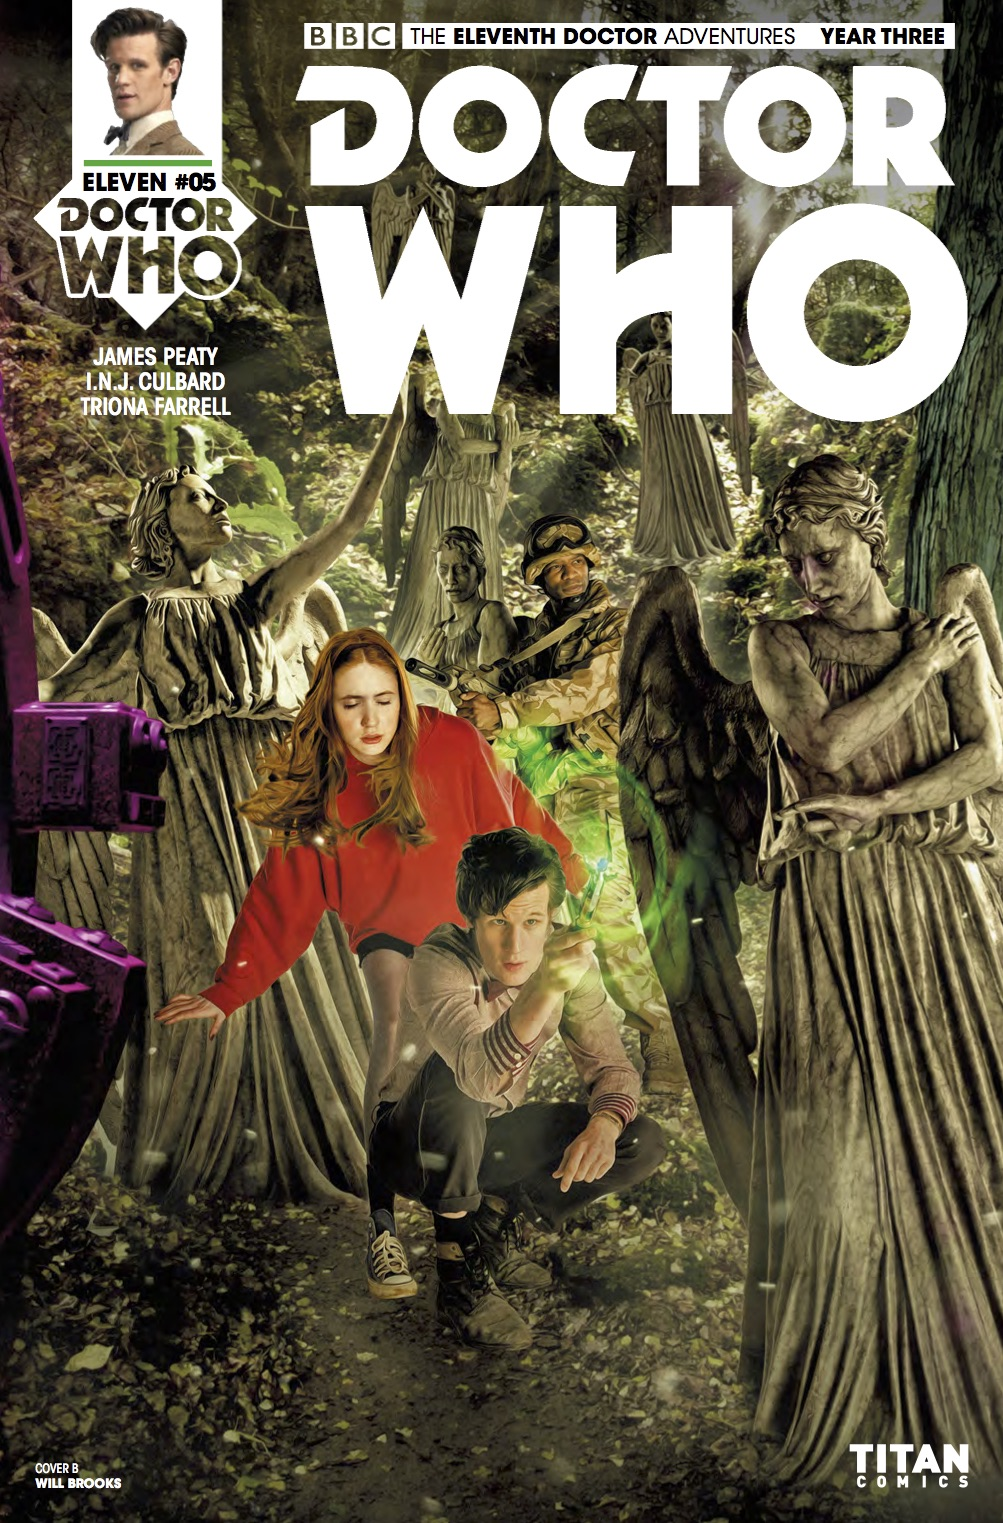 TITAN COMICS - Doctor Who : The Eleventh Doctor Year Three #5 Cover B: Photo Will Brooks